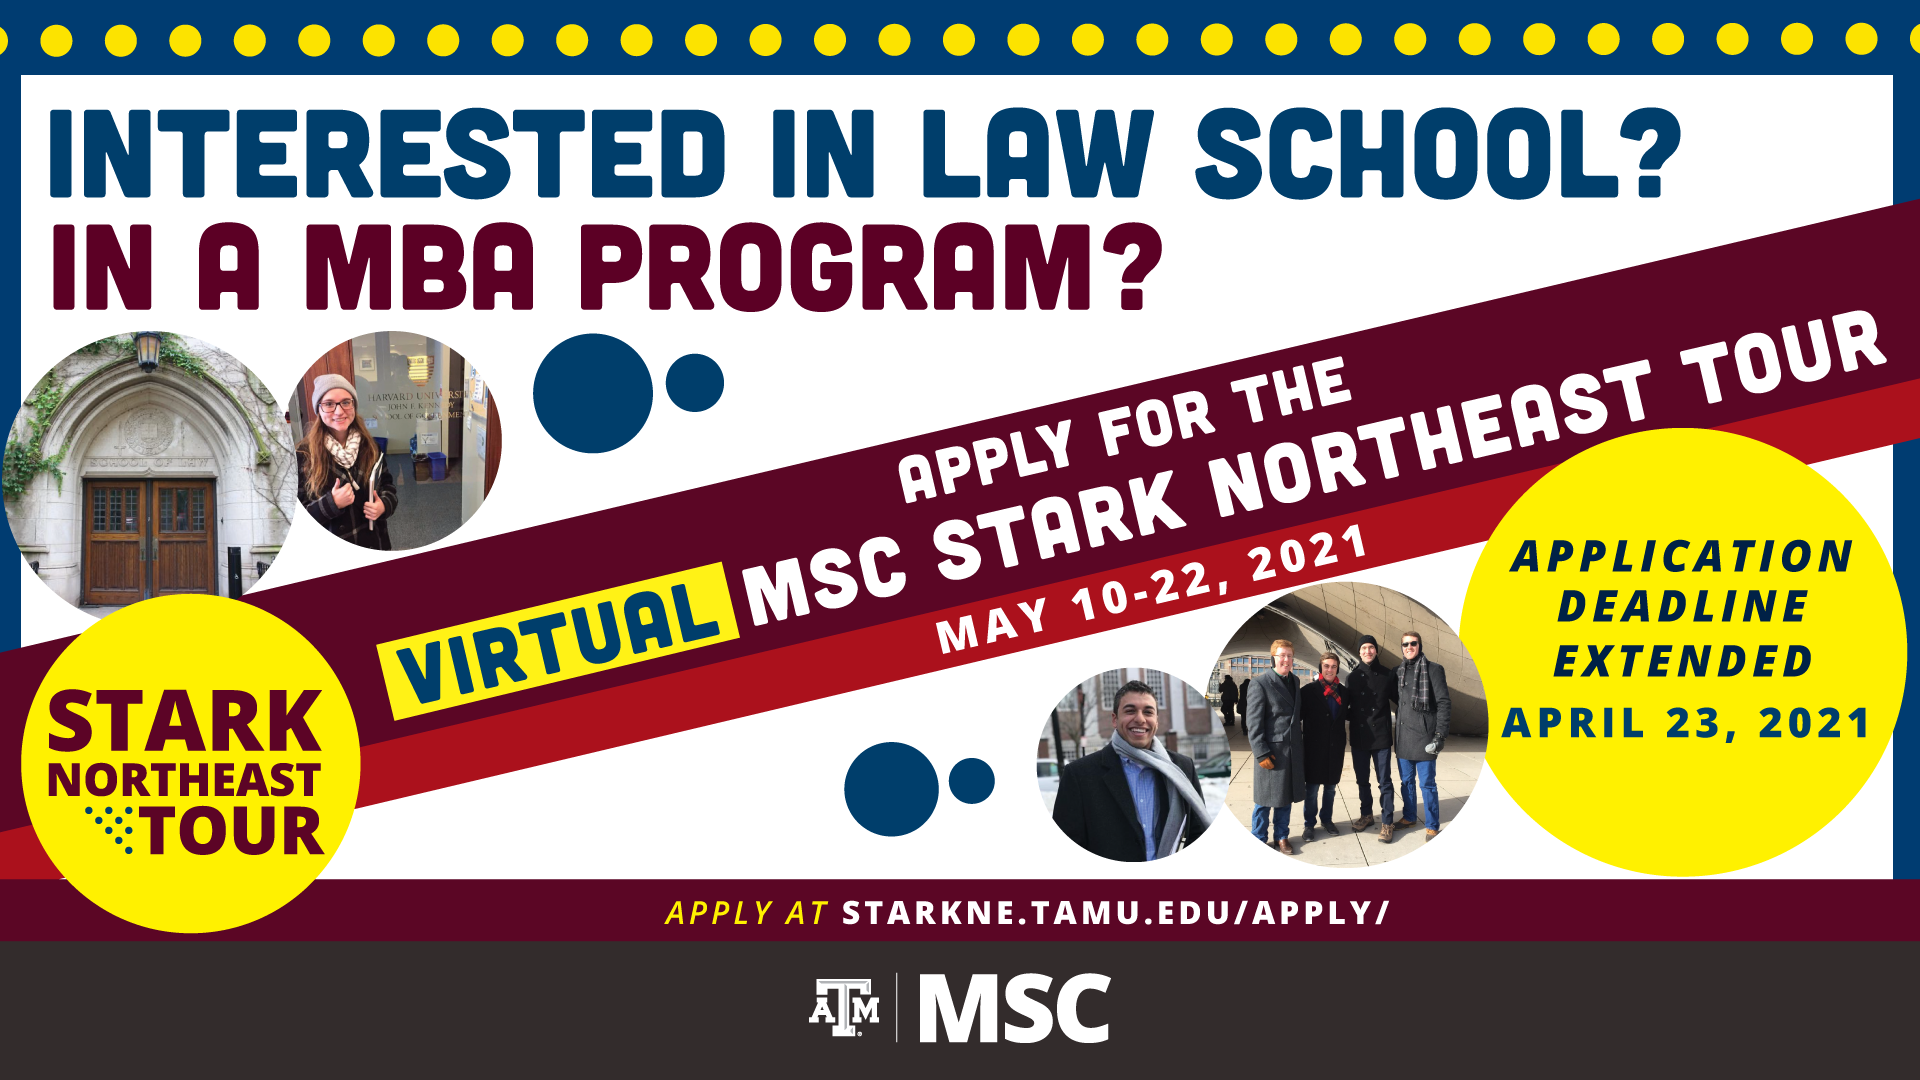 Interested in Law School? in a MBA Program? Apply for the Virtual MSC Stark Northeast Tour for May 10-22, 2021, Application Deadline Extended April 23, 2021, Apply at starkne.tamu.edu/apply/